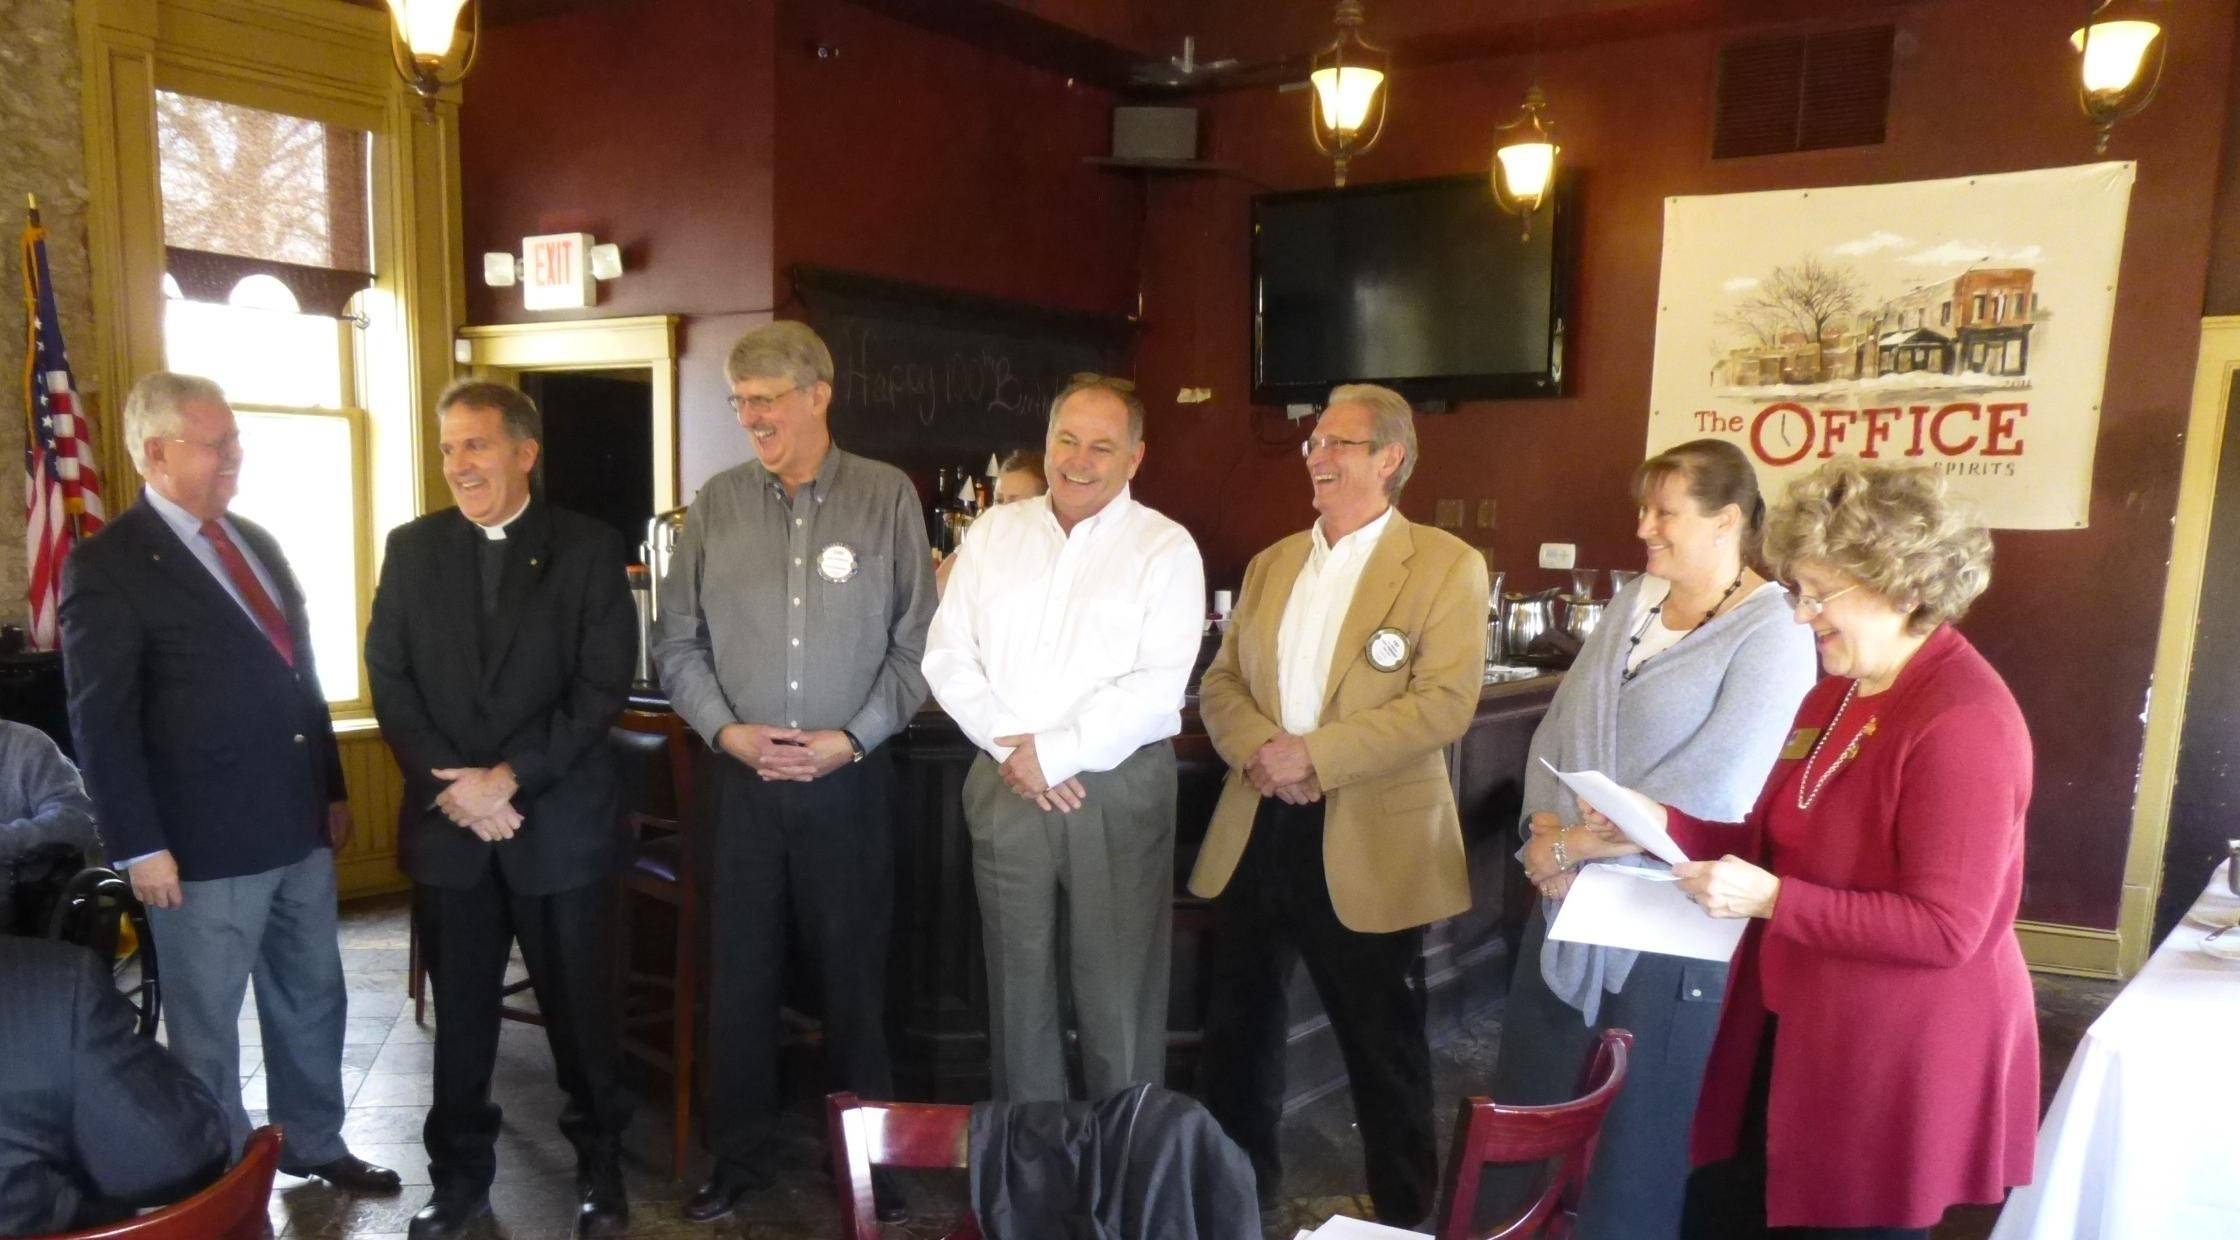 Rotary District Governor Elect Ellen Young, right, inducts three new members to the Rotary Club of St. Charles with Bob Brown, left, the Rev. David Peck, David McNamara, Tony Hyler, Guy Bellaver and Holly Cabel.